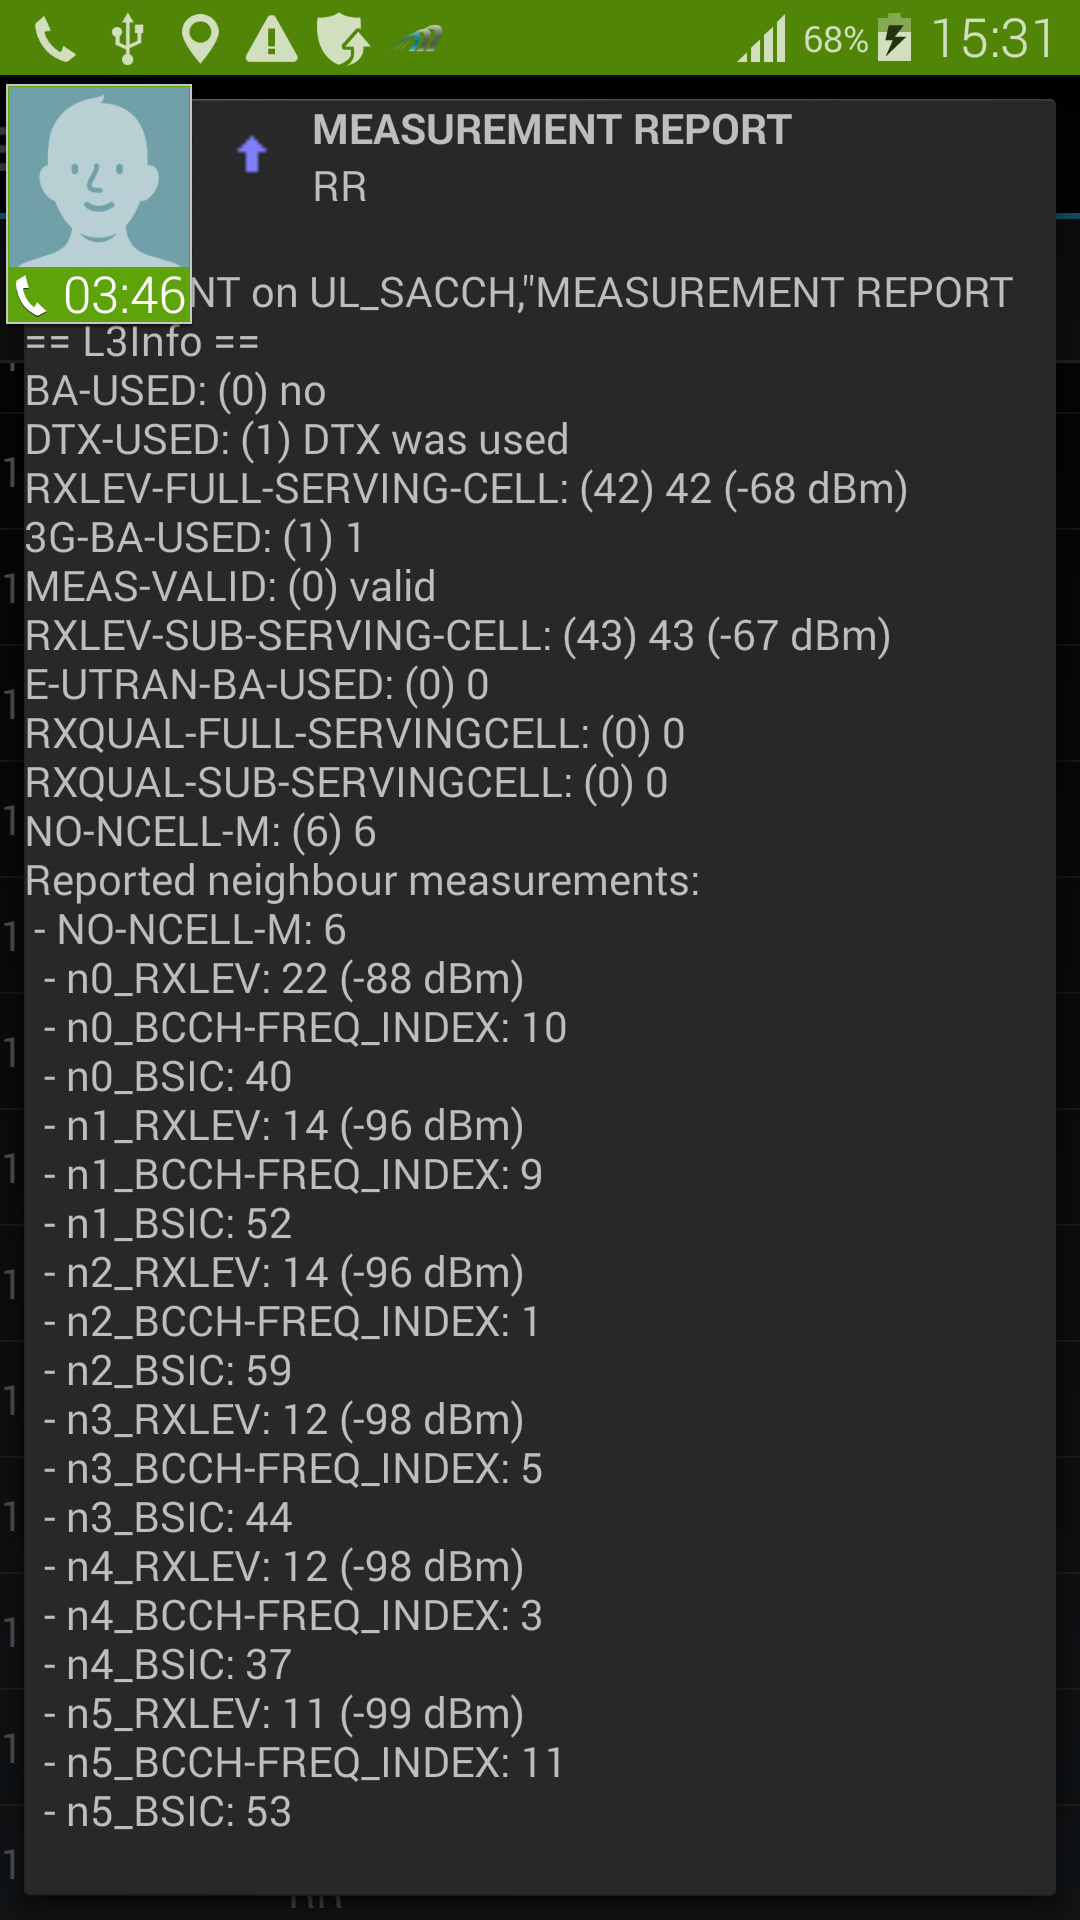 AZQ on Samsung S5 GSM L3 RR SACCH Measurement Report